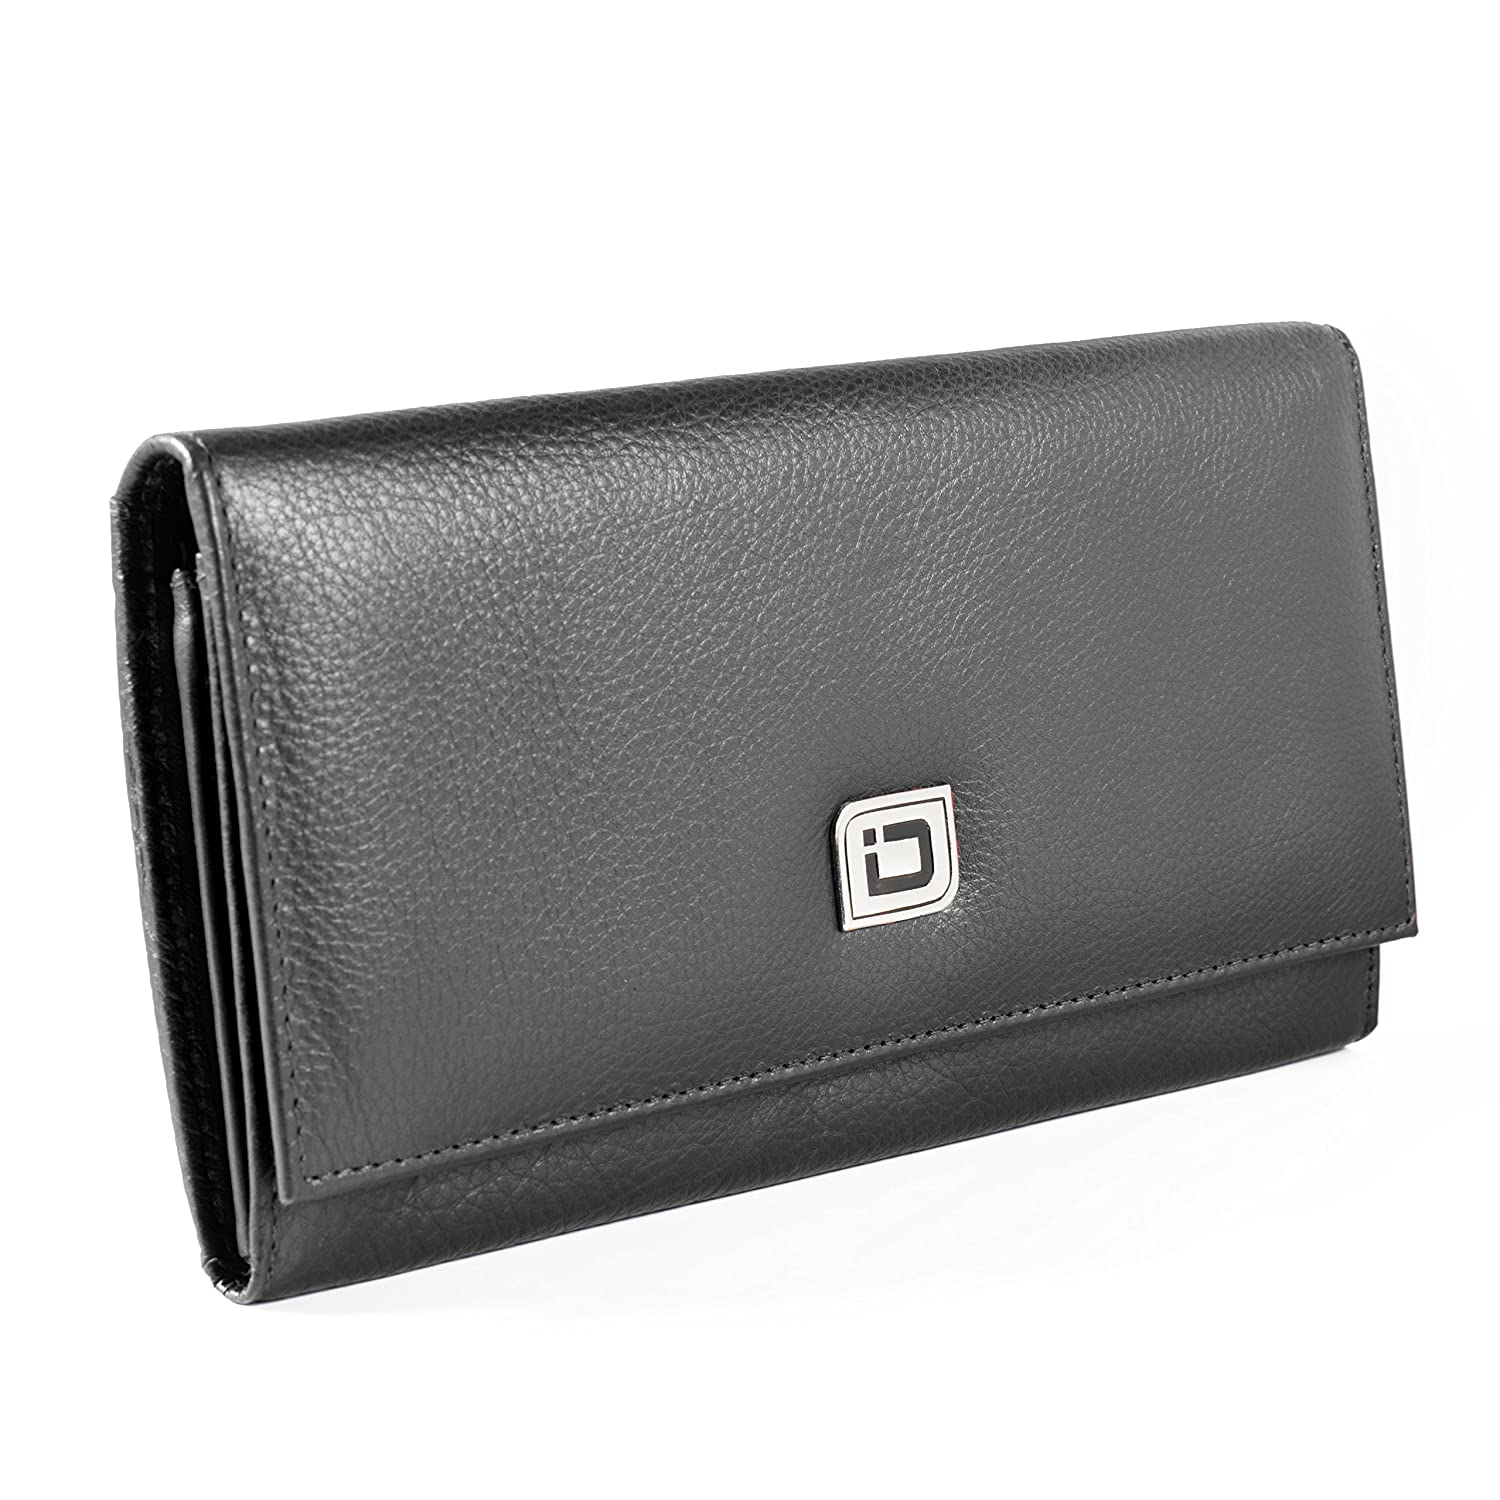 Black RFID Wallet Ladies Clutch  RFID Predective Ladies Wallet  RFID Secure Wallets Stop Electronic Pickpocketing (Brown)